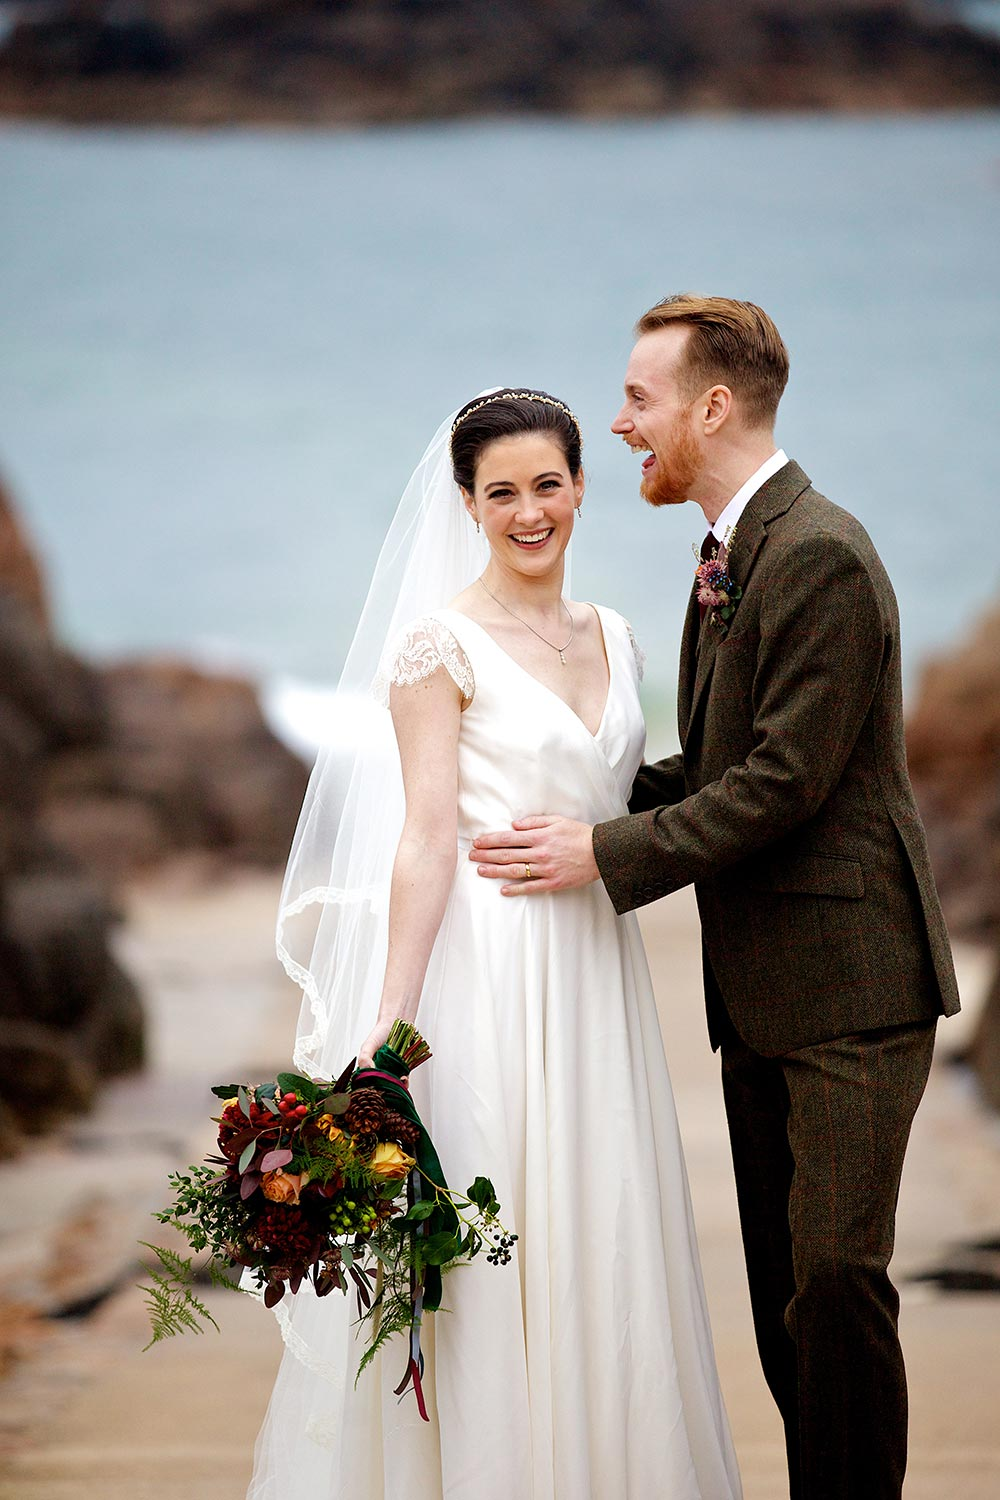 11-wilde-thyme-winter-wedding-bridal-flowers-beach.jpg